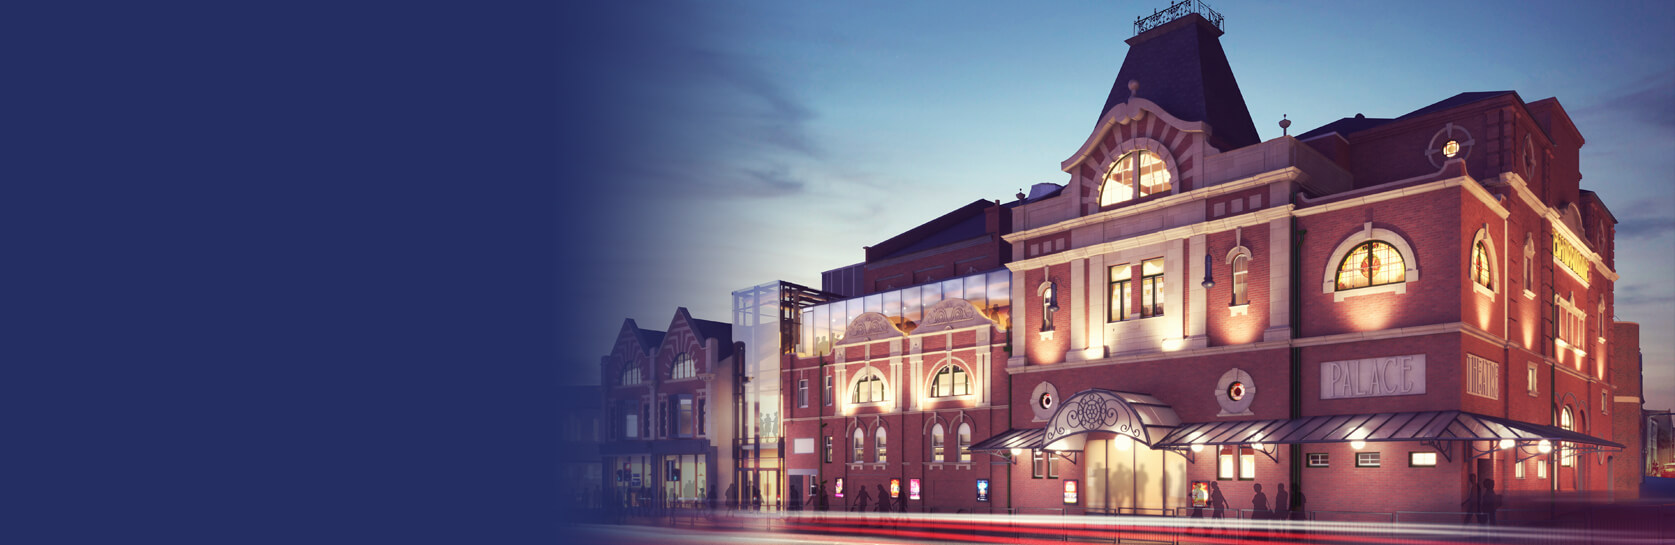 Darlington Hippodrome re-opens on 18 November